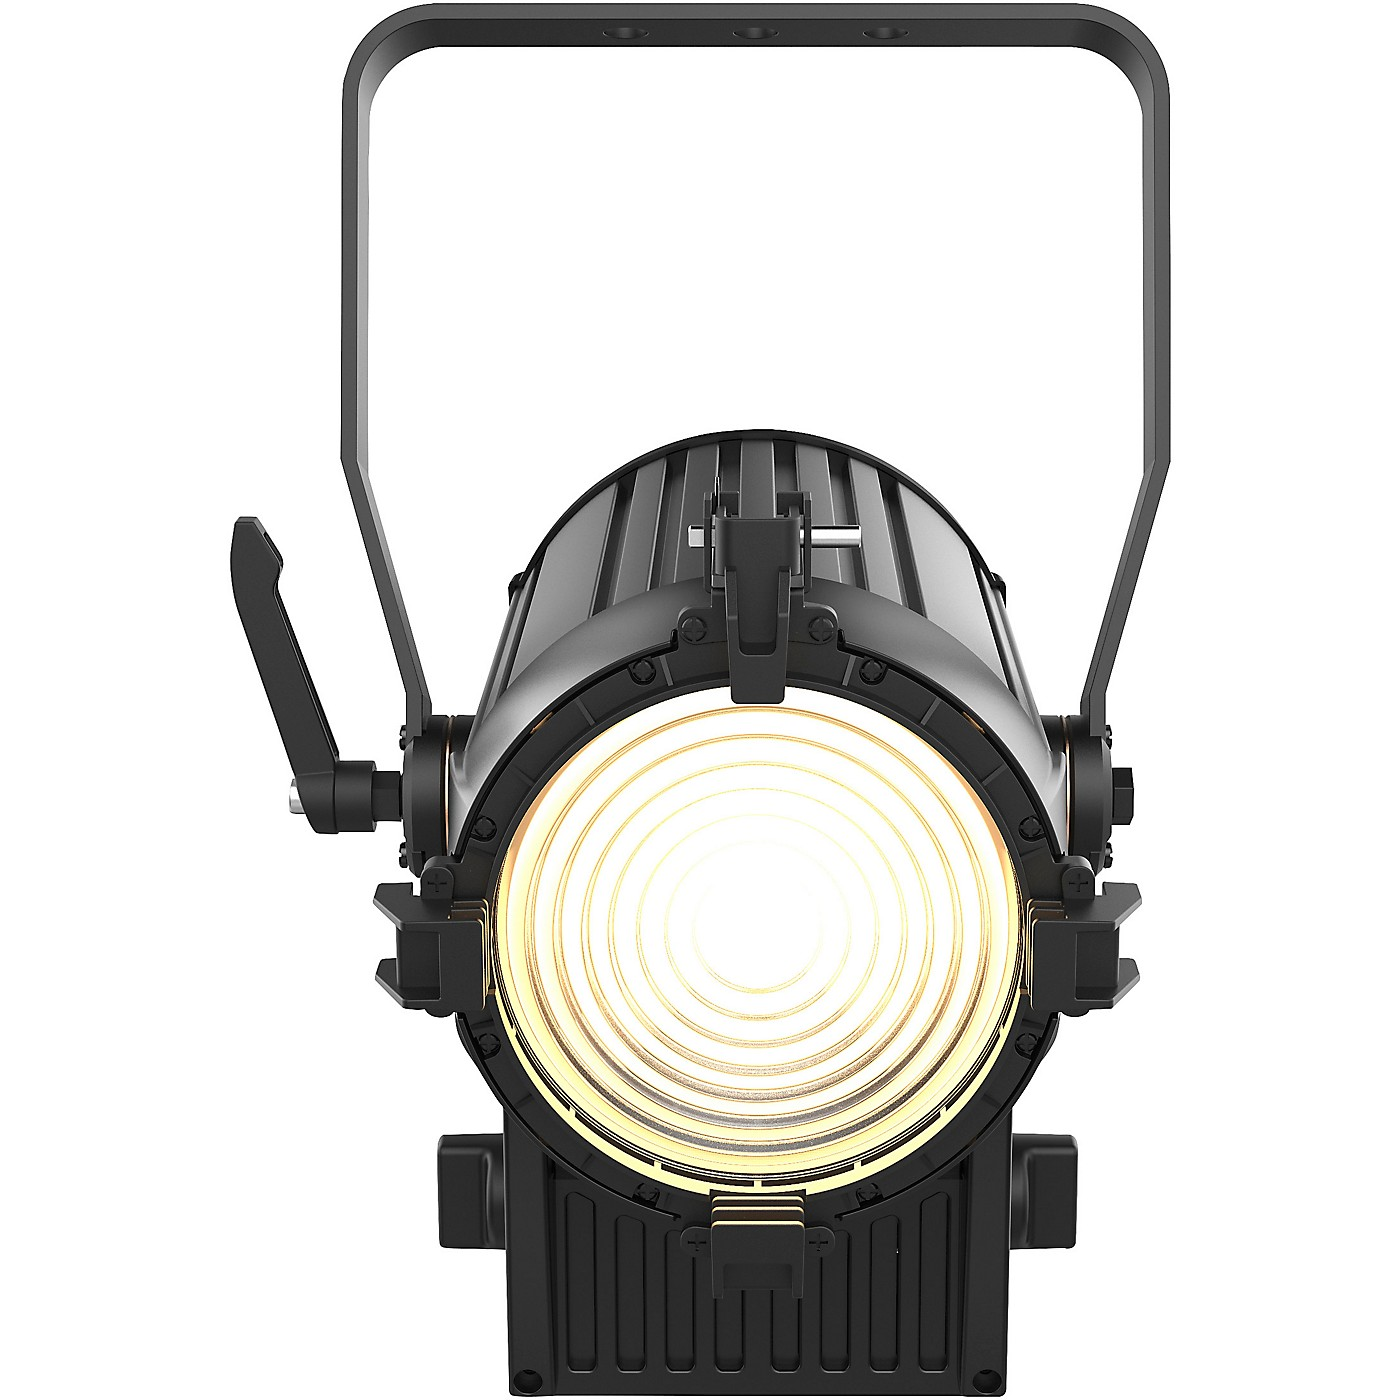 CHAUVET Professional Ovation FD-105WW Warm White LED Fresnel wash light thumbnail